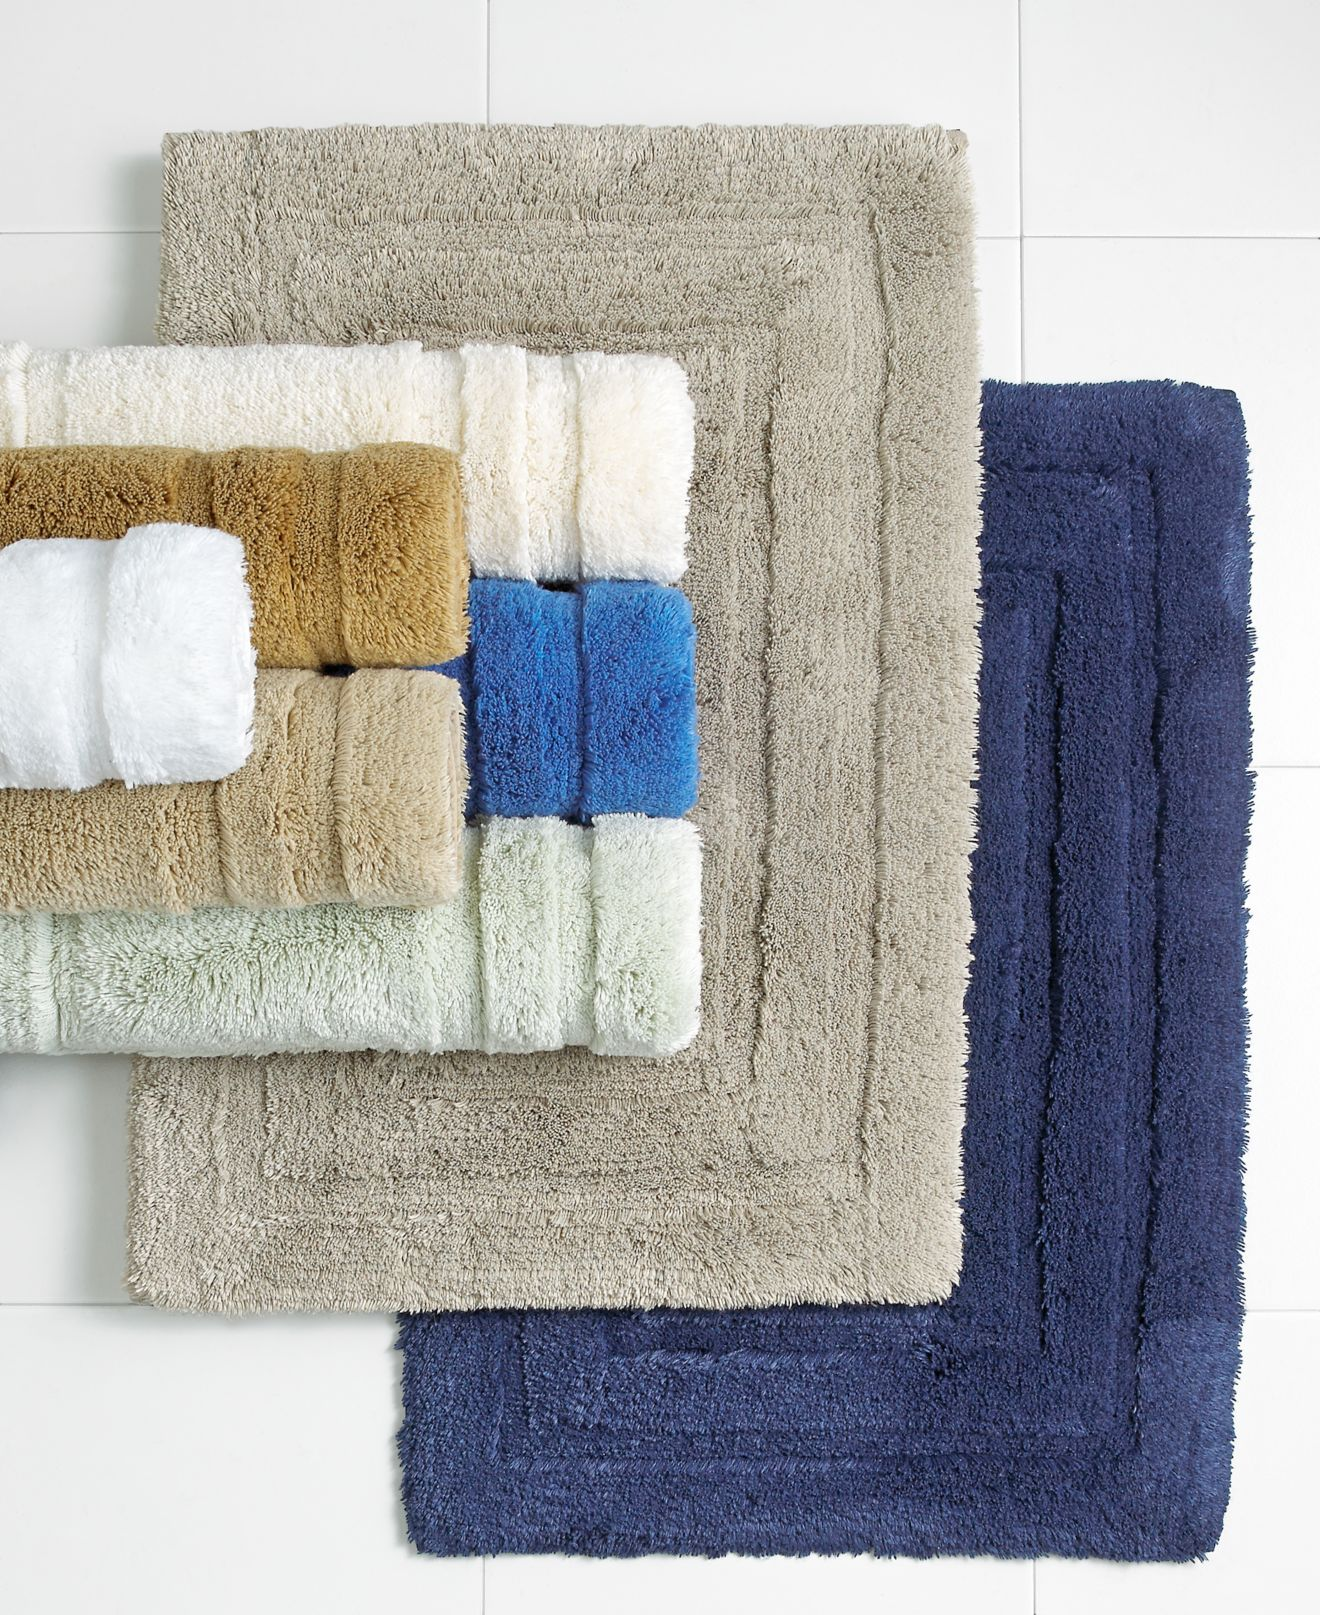 bath rugs and mats - macy's